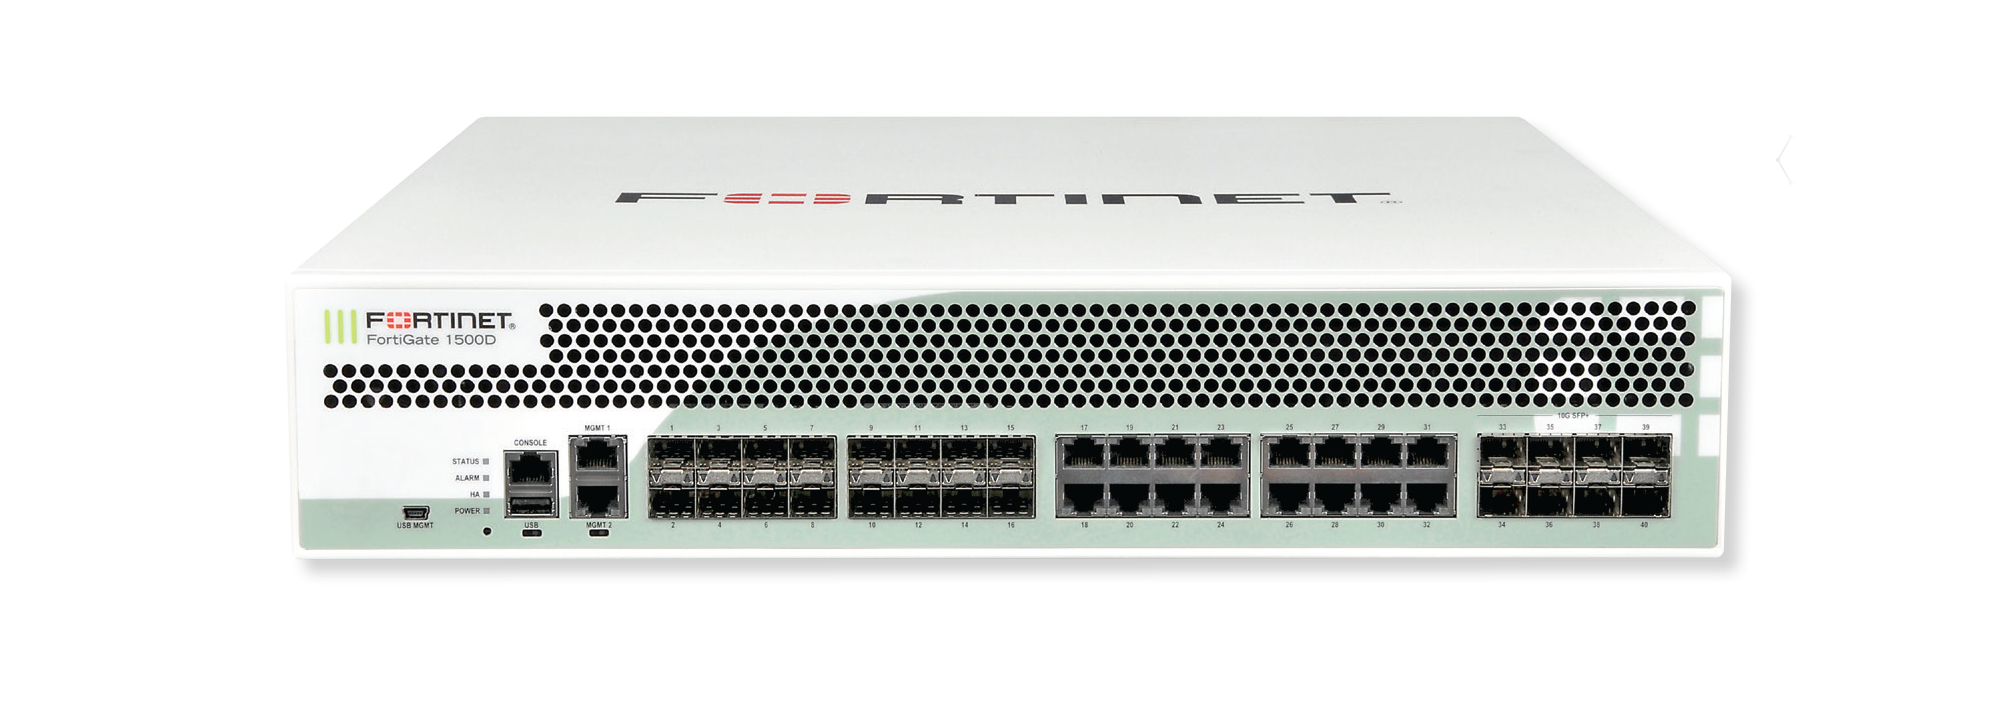 Fortinet FortiGate 1500D, 1500D-DC and 1500DT